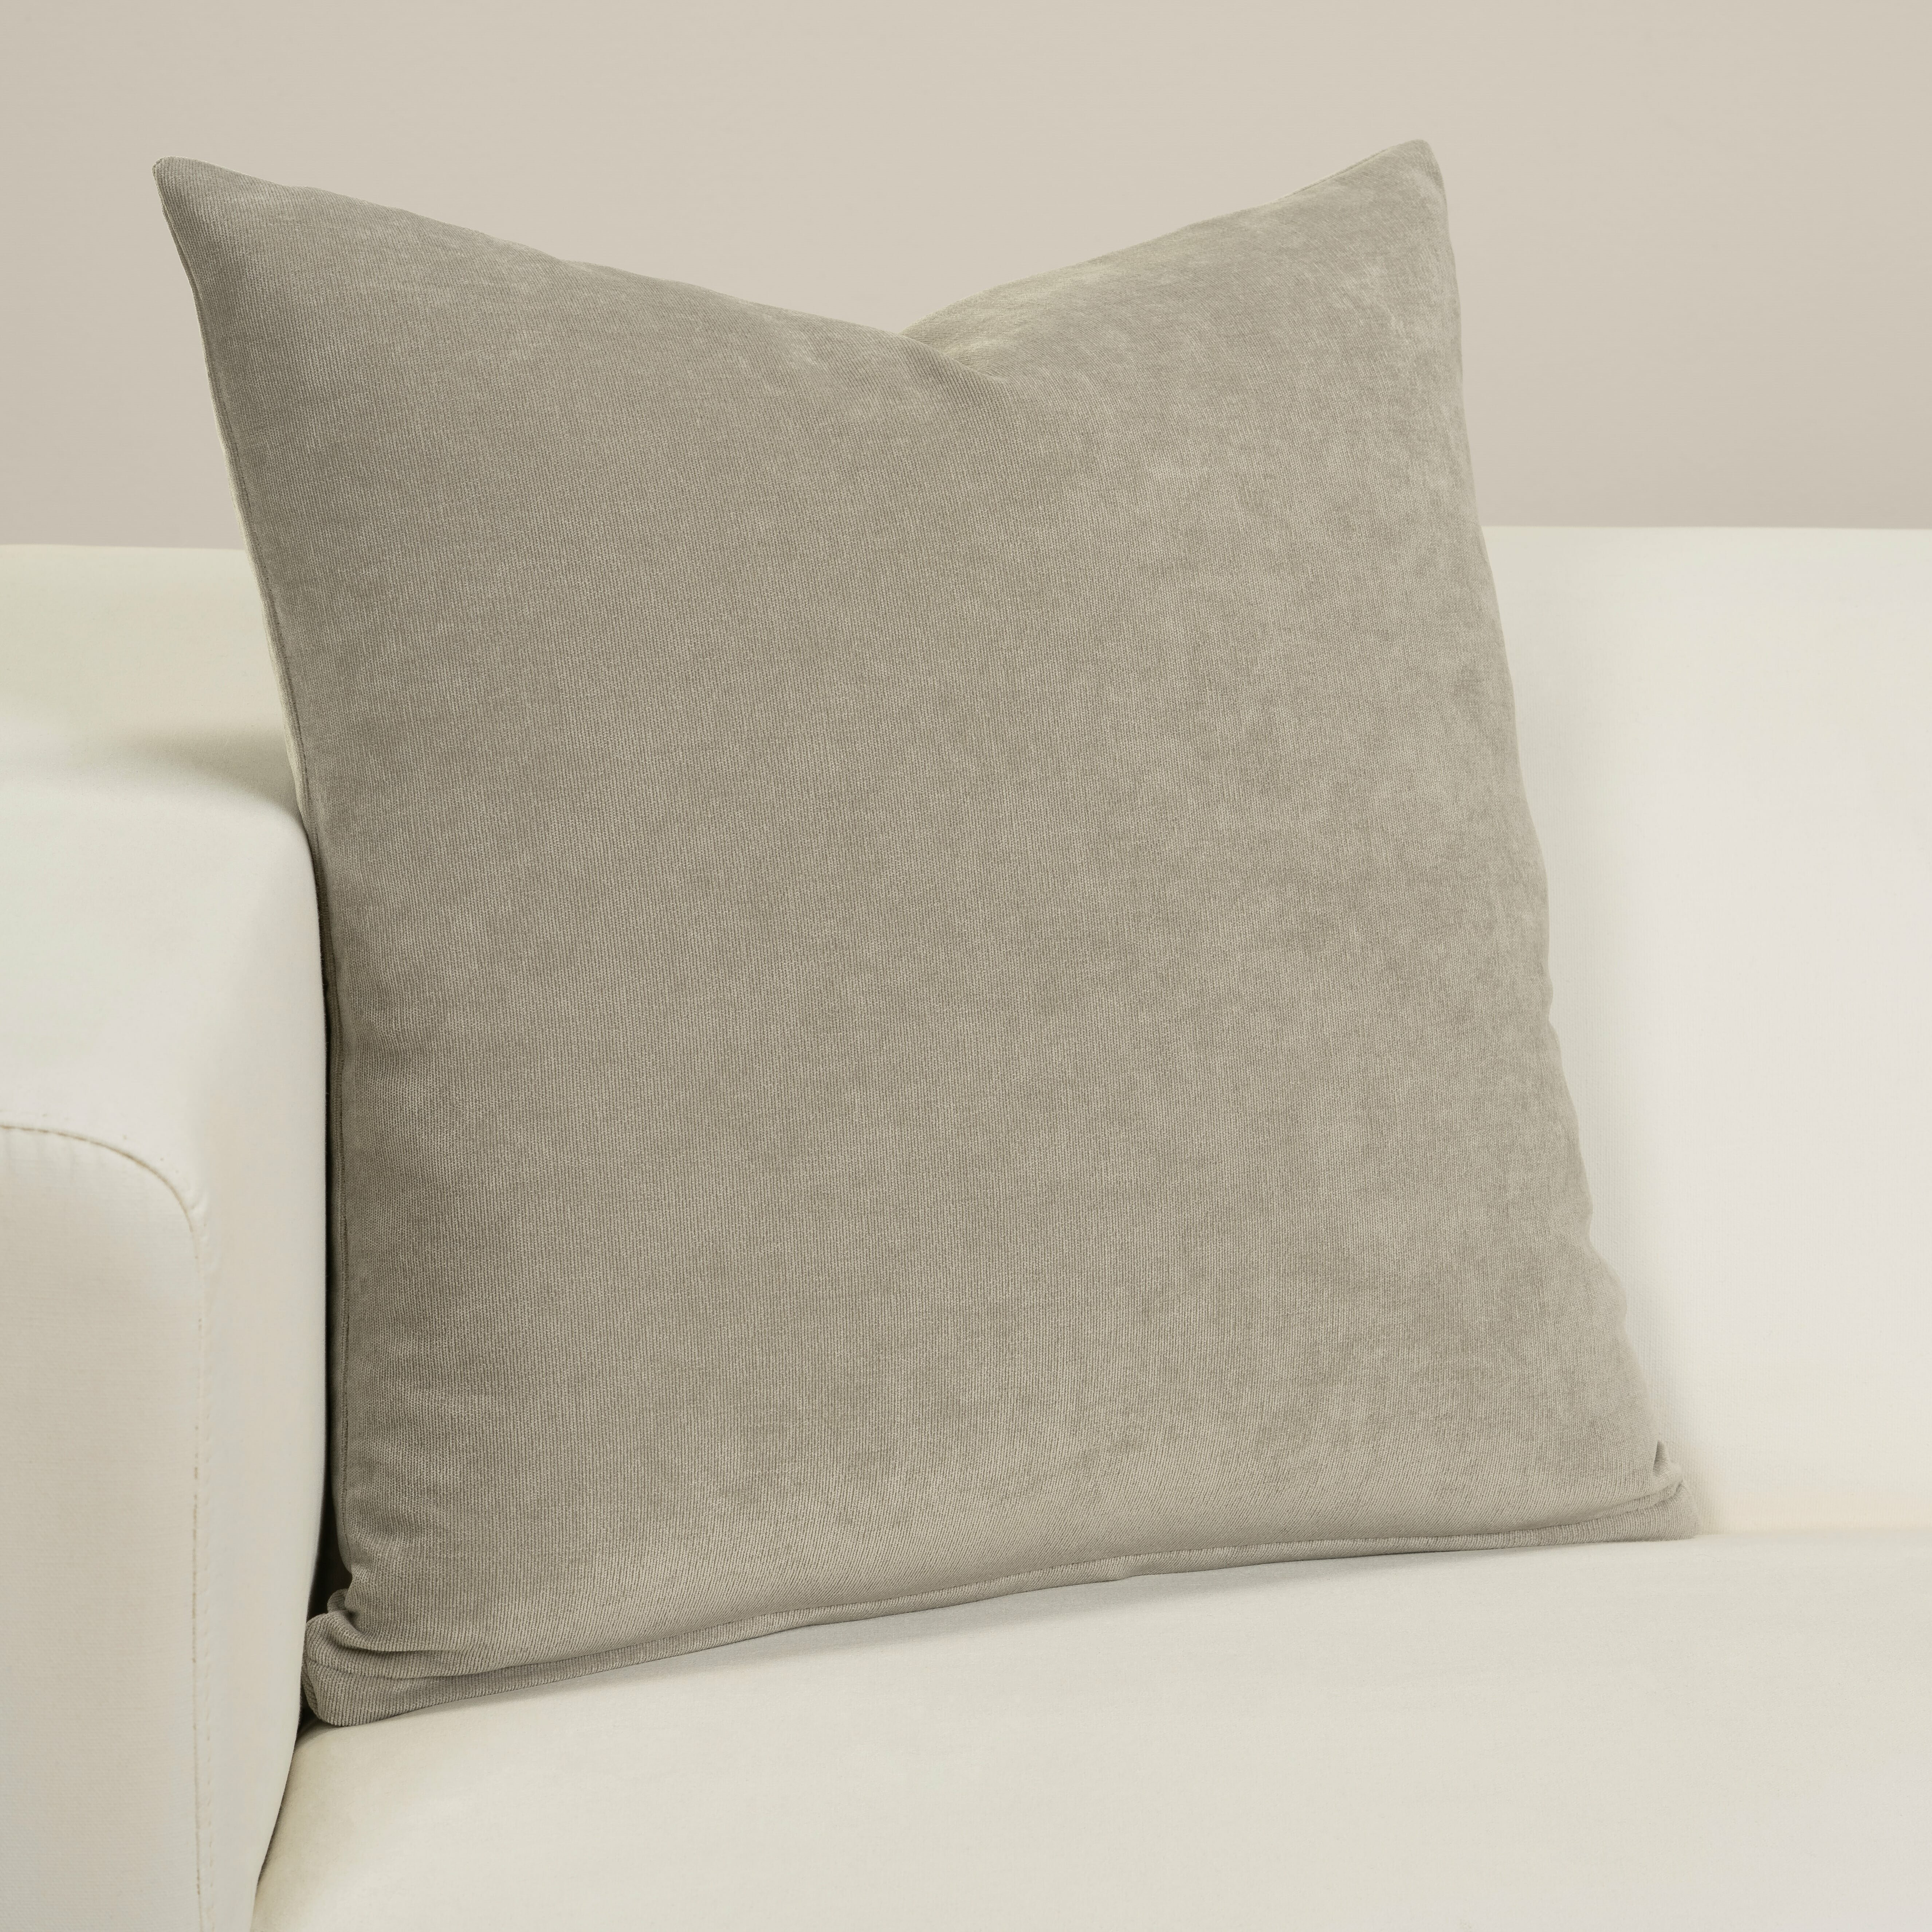 ArtVerse Katelyn Smith 14 x 14 Poly Twill Double Sided Print with Concealed Zipper /& Insert Kansas Love Watercolor Pillow